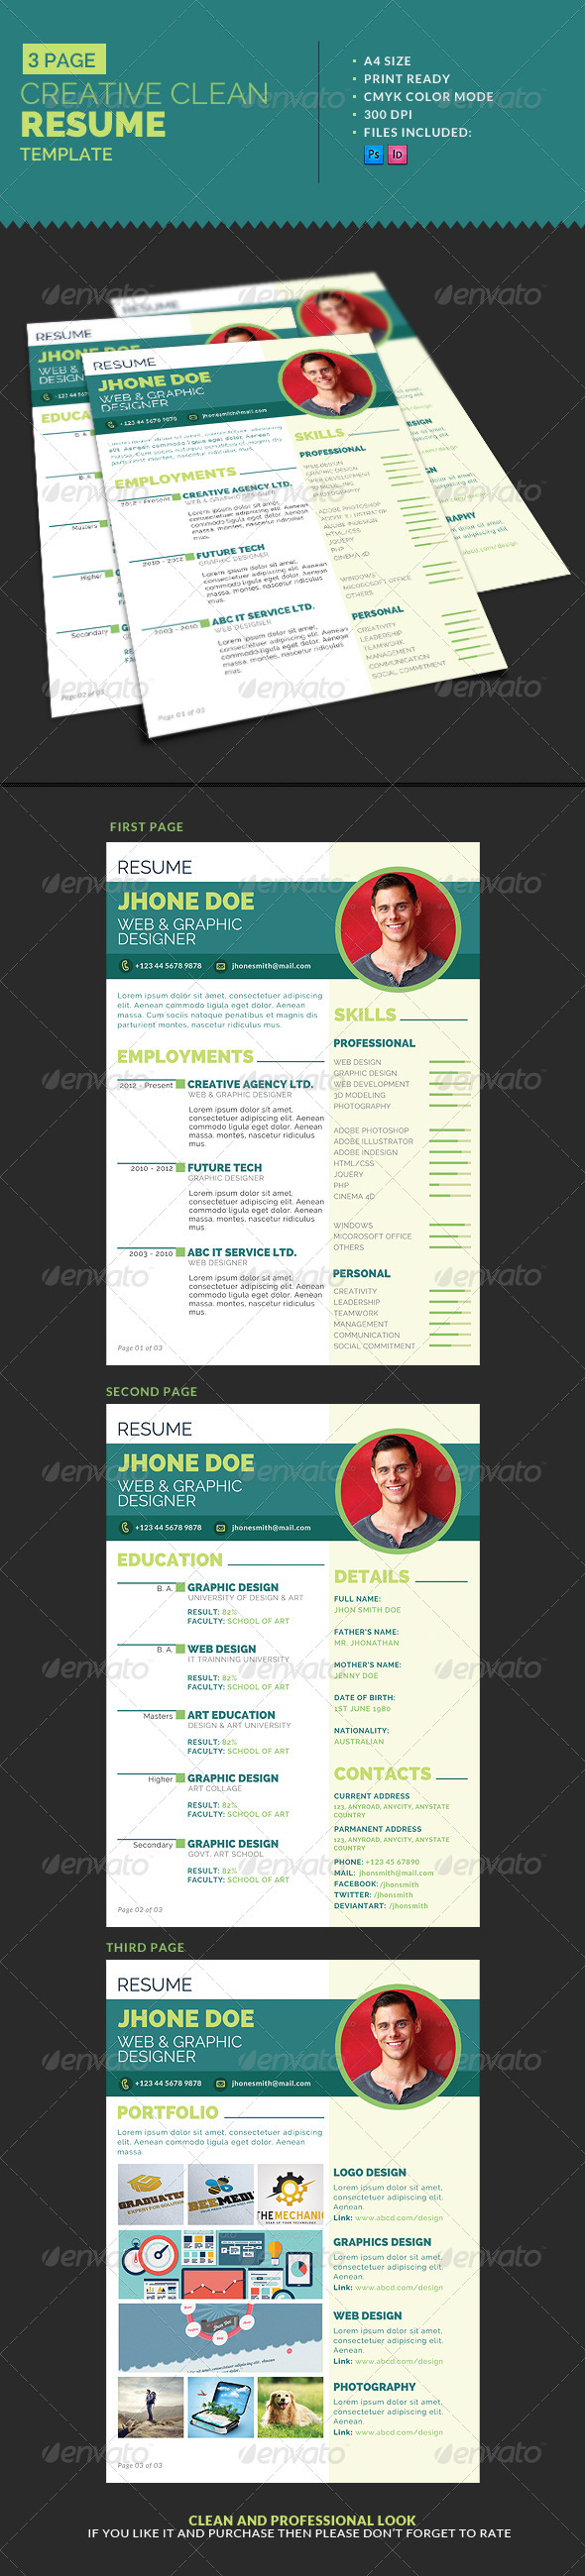 3-Page Creative Clean Resume Template - Resumes Stationery